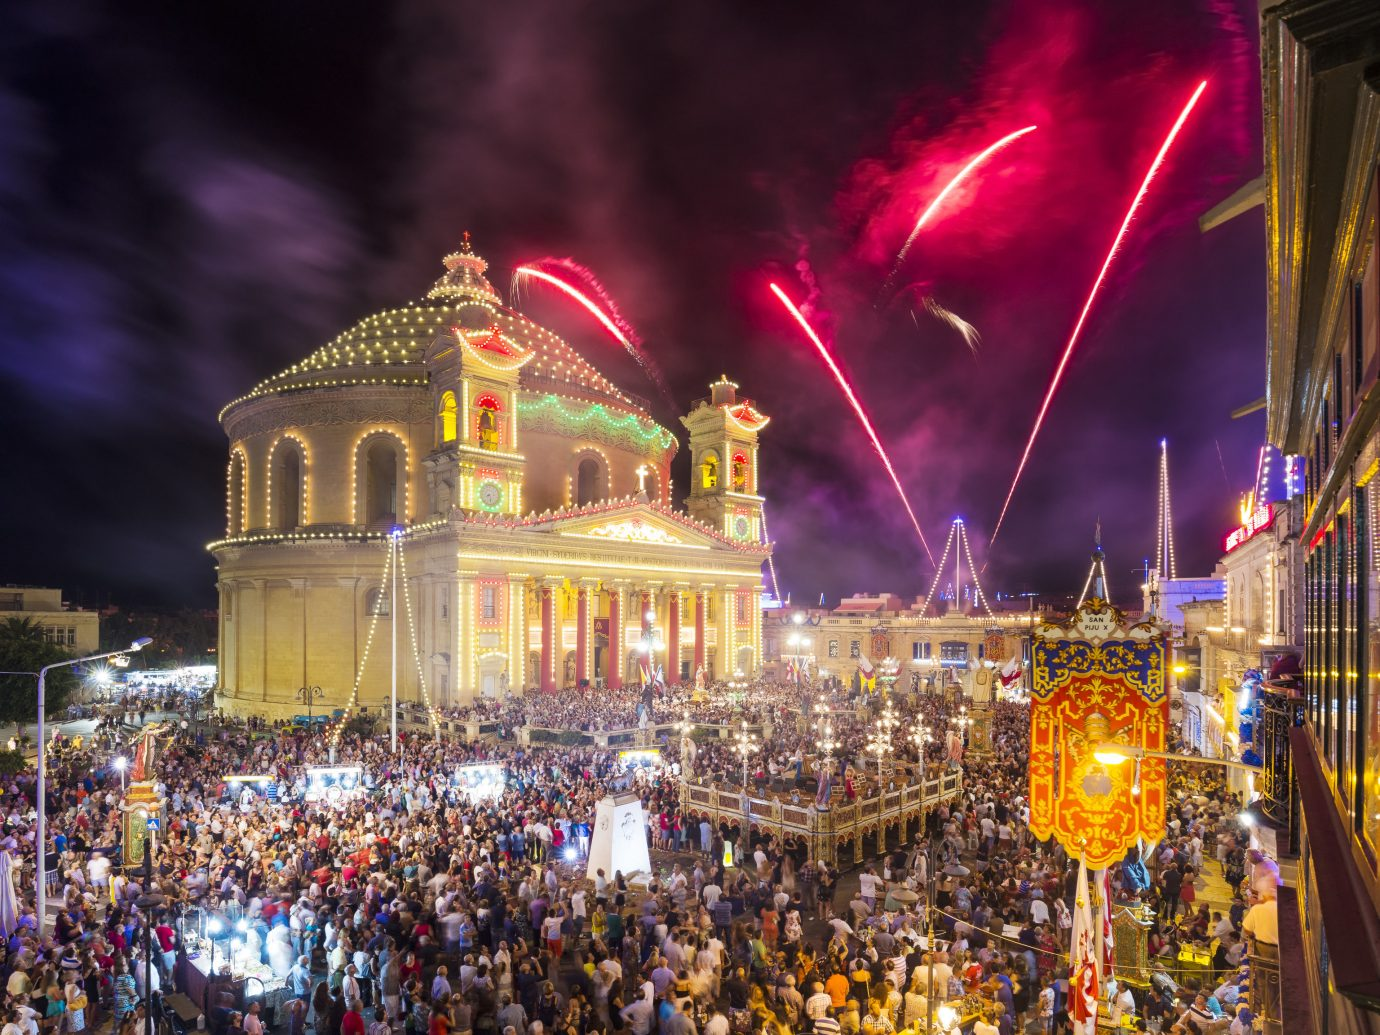 Trip Ideas person crowd night carnival event festival new year